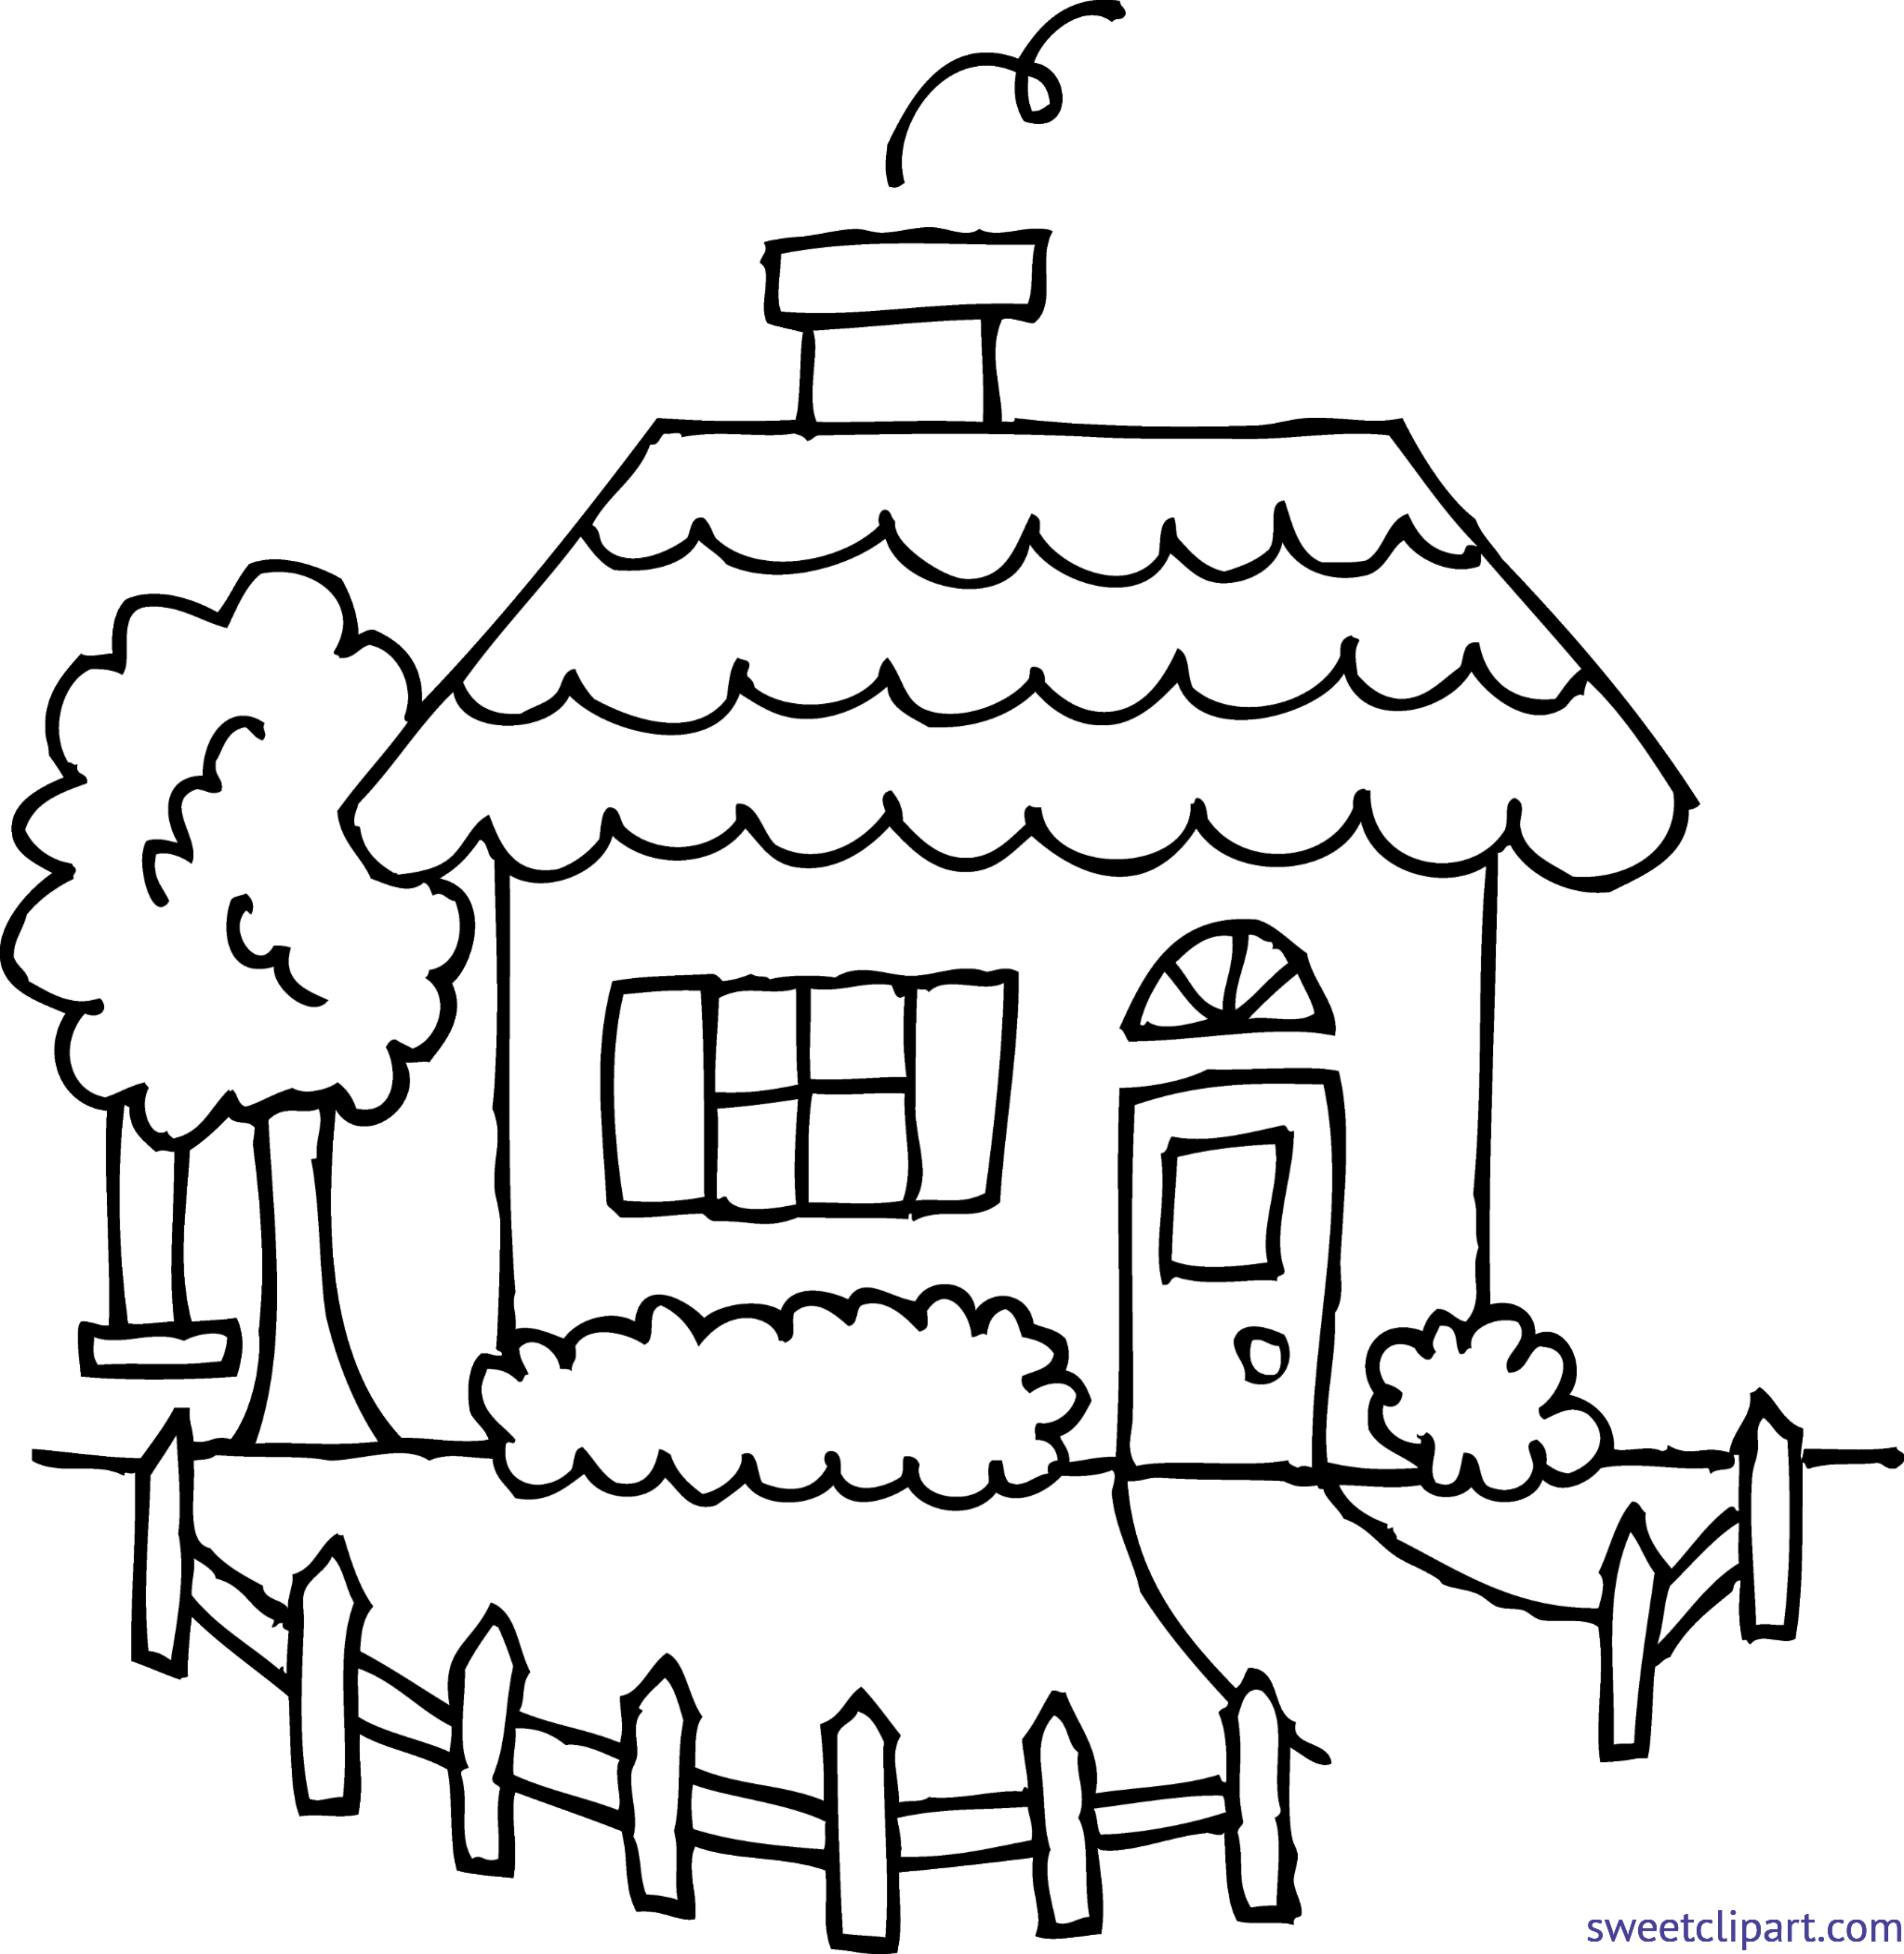 Sunny clipart drawn. House line drawing clip